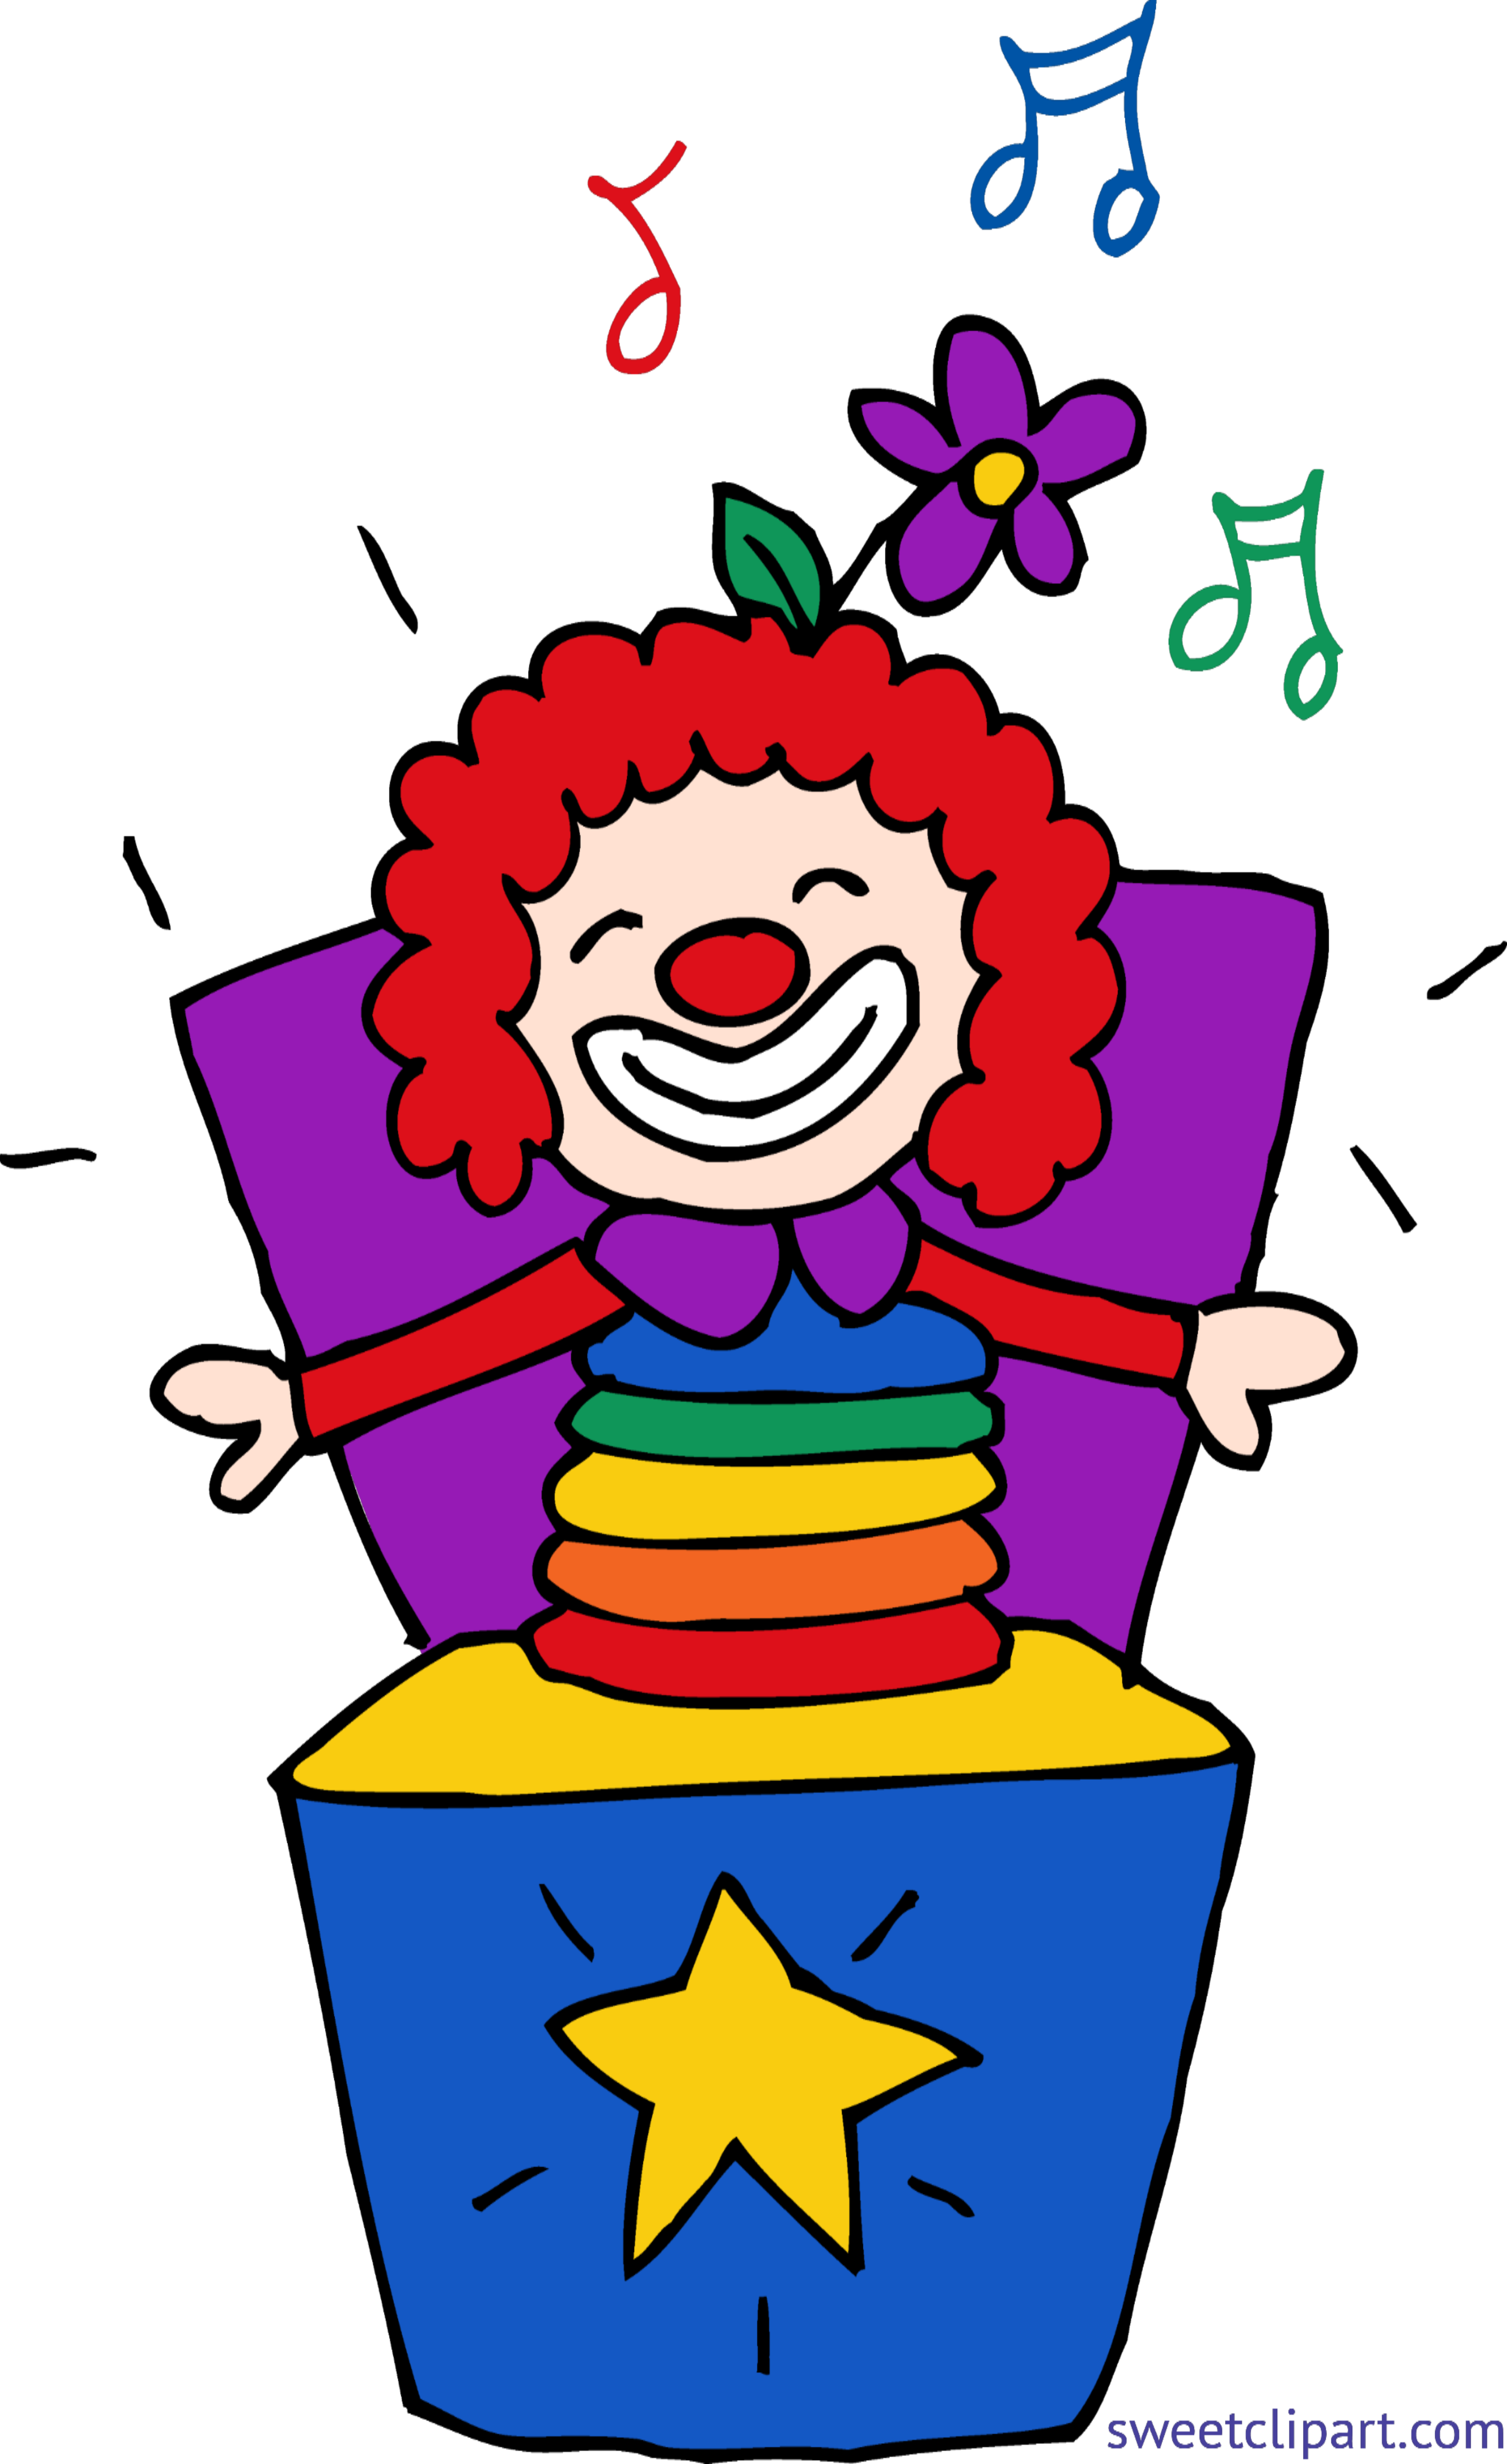 Jack in the box. Clipart thermometer cartoon food